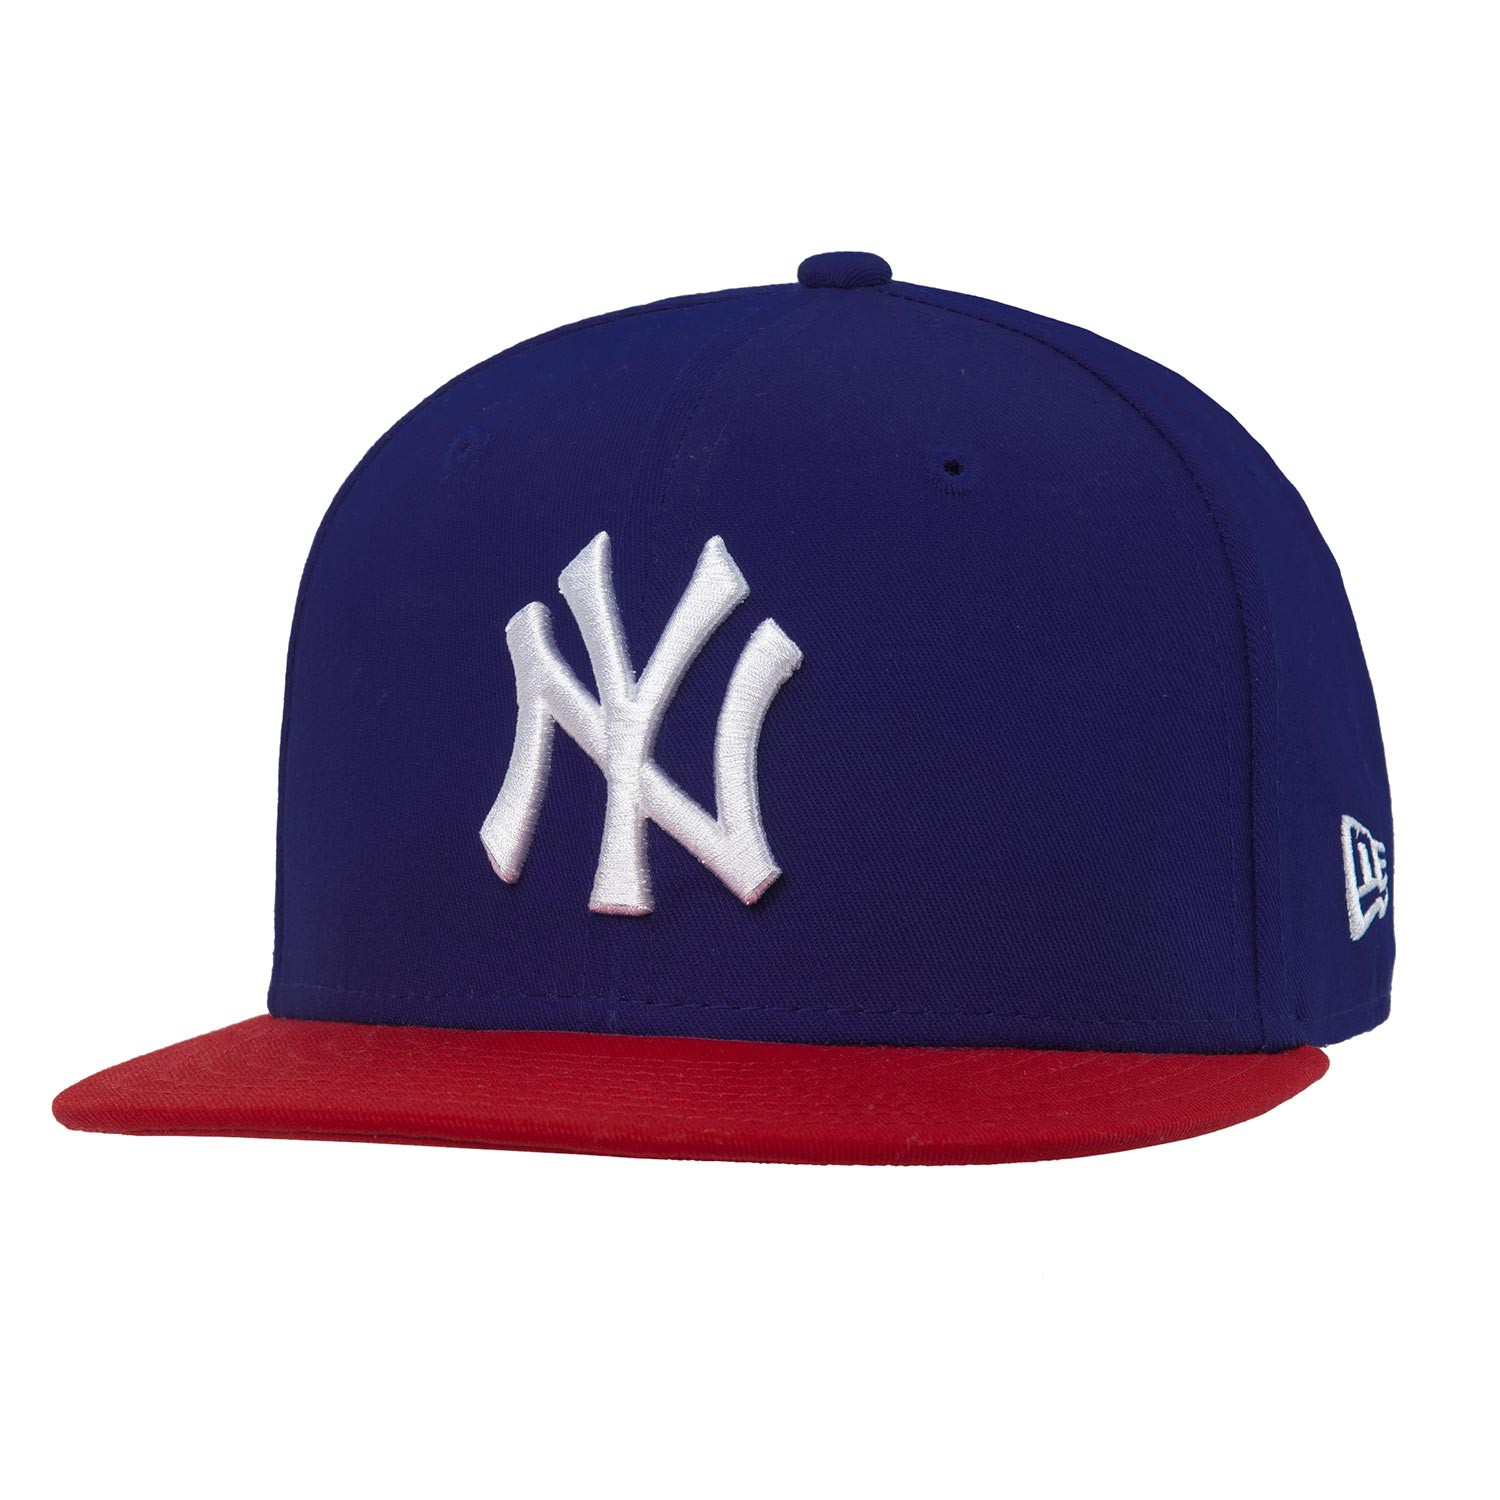 Kšiltovka New Era New York Yankees 9Fifty Mlb Co. royal/scarlet